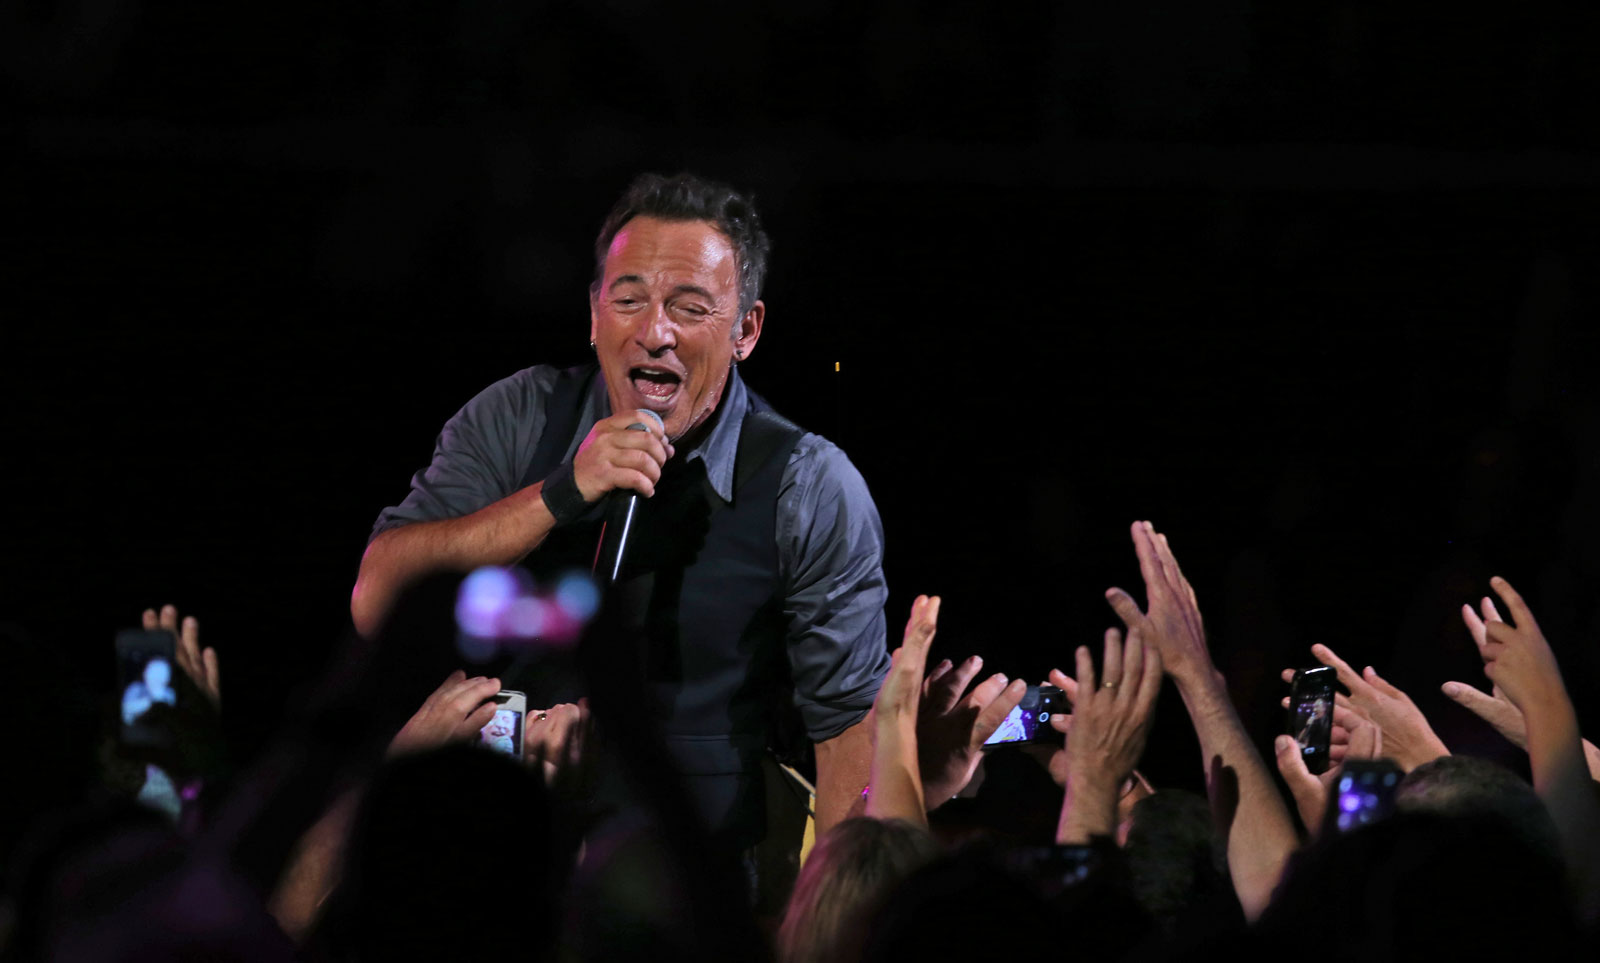 Springsteen pays tribute to Bee Gees, AC/DC in concert